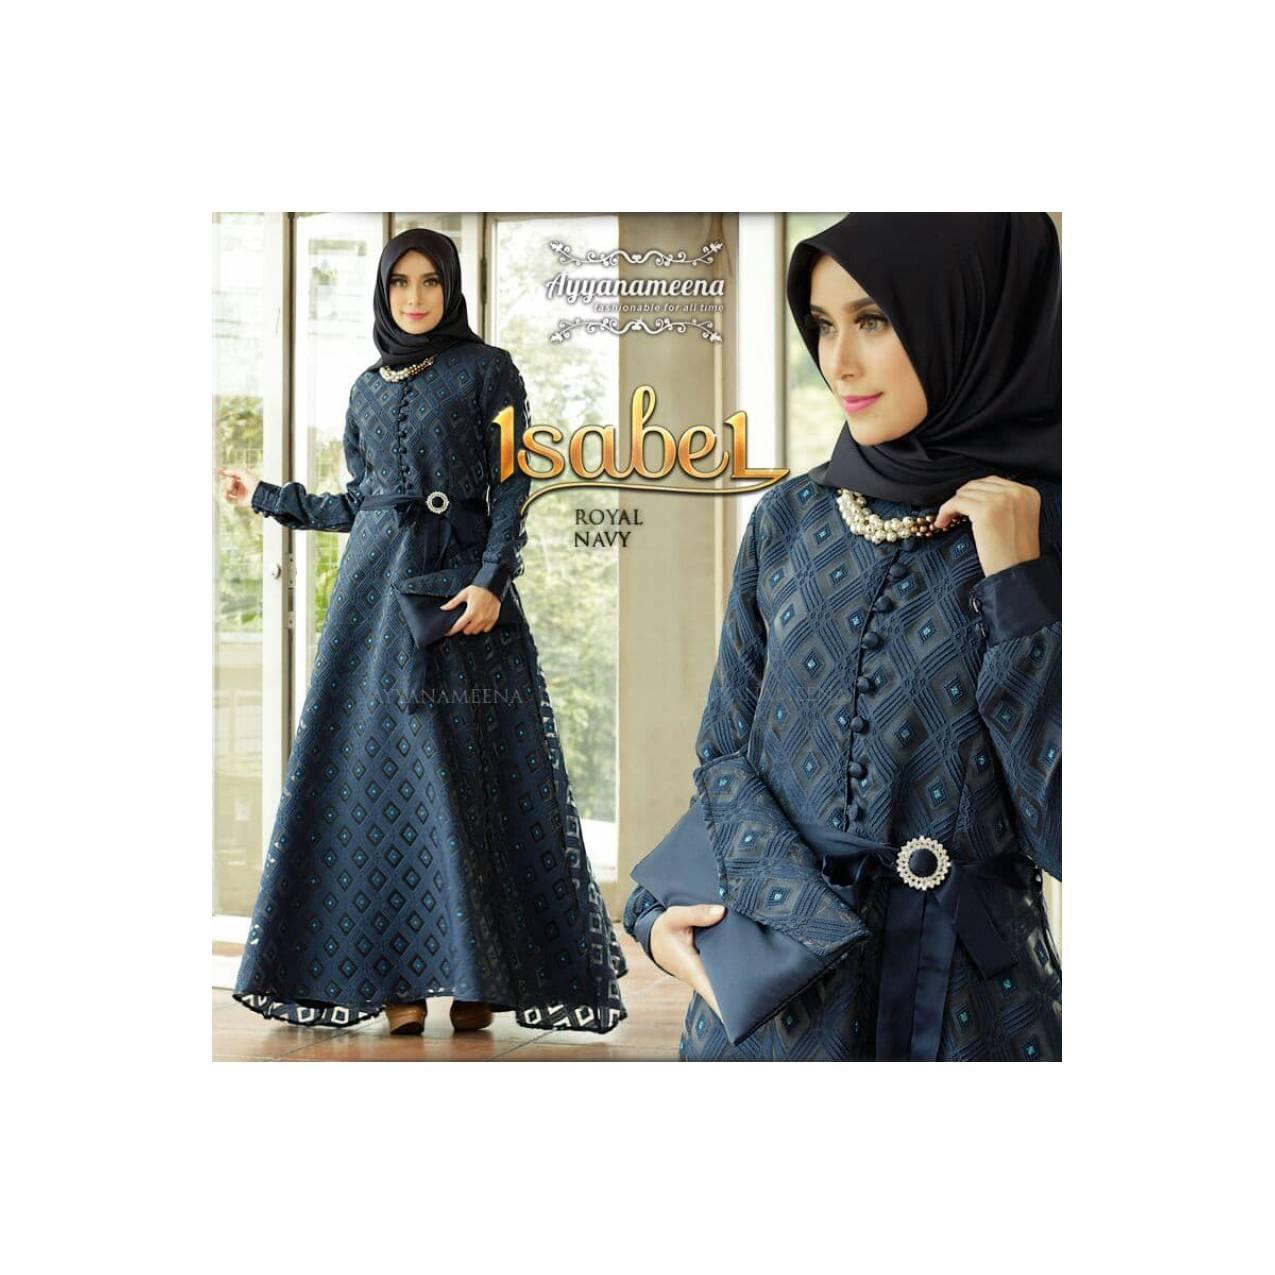 ISABELE SET ROYAL NAVY [GAMIS JILBAB] BY AYYANAMENA